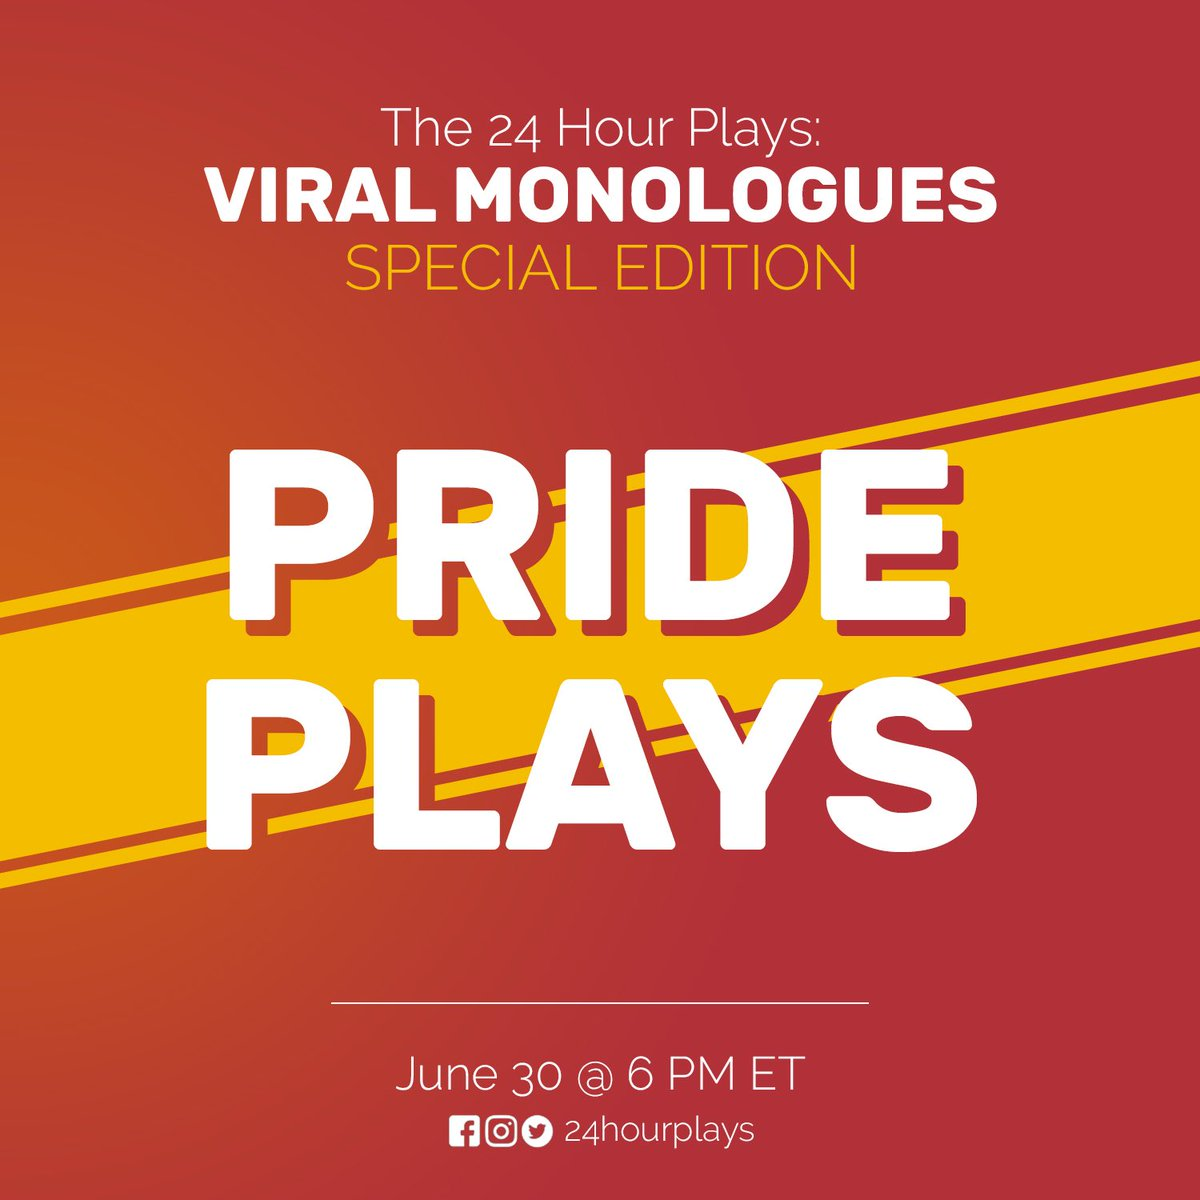 Stay tuned!! I wrote something cute. Coming to you tonight! #writer #prideplays #24hourplays